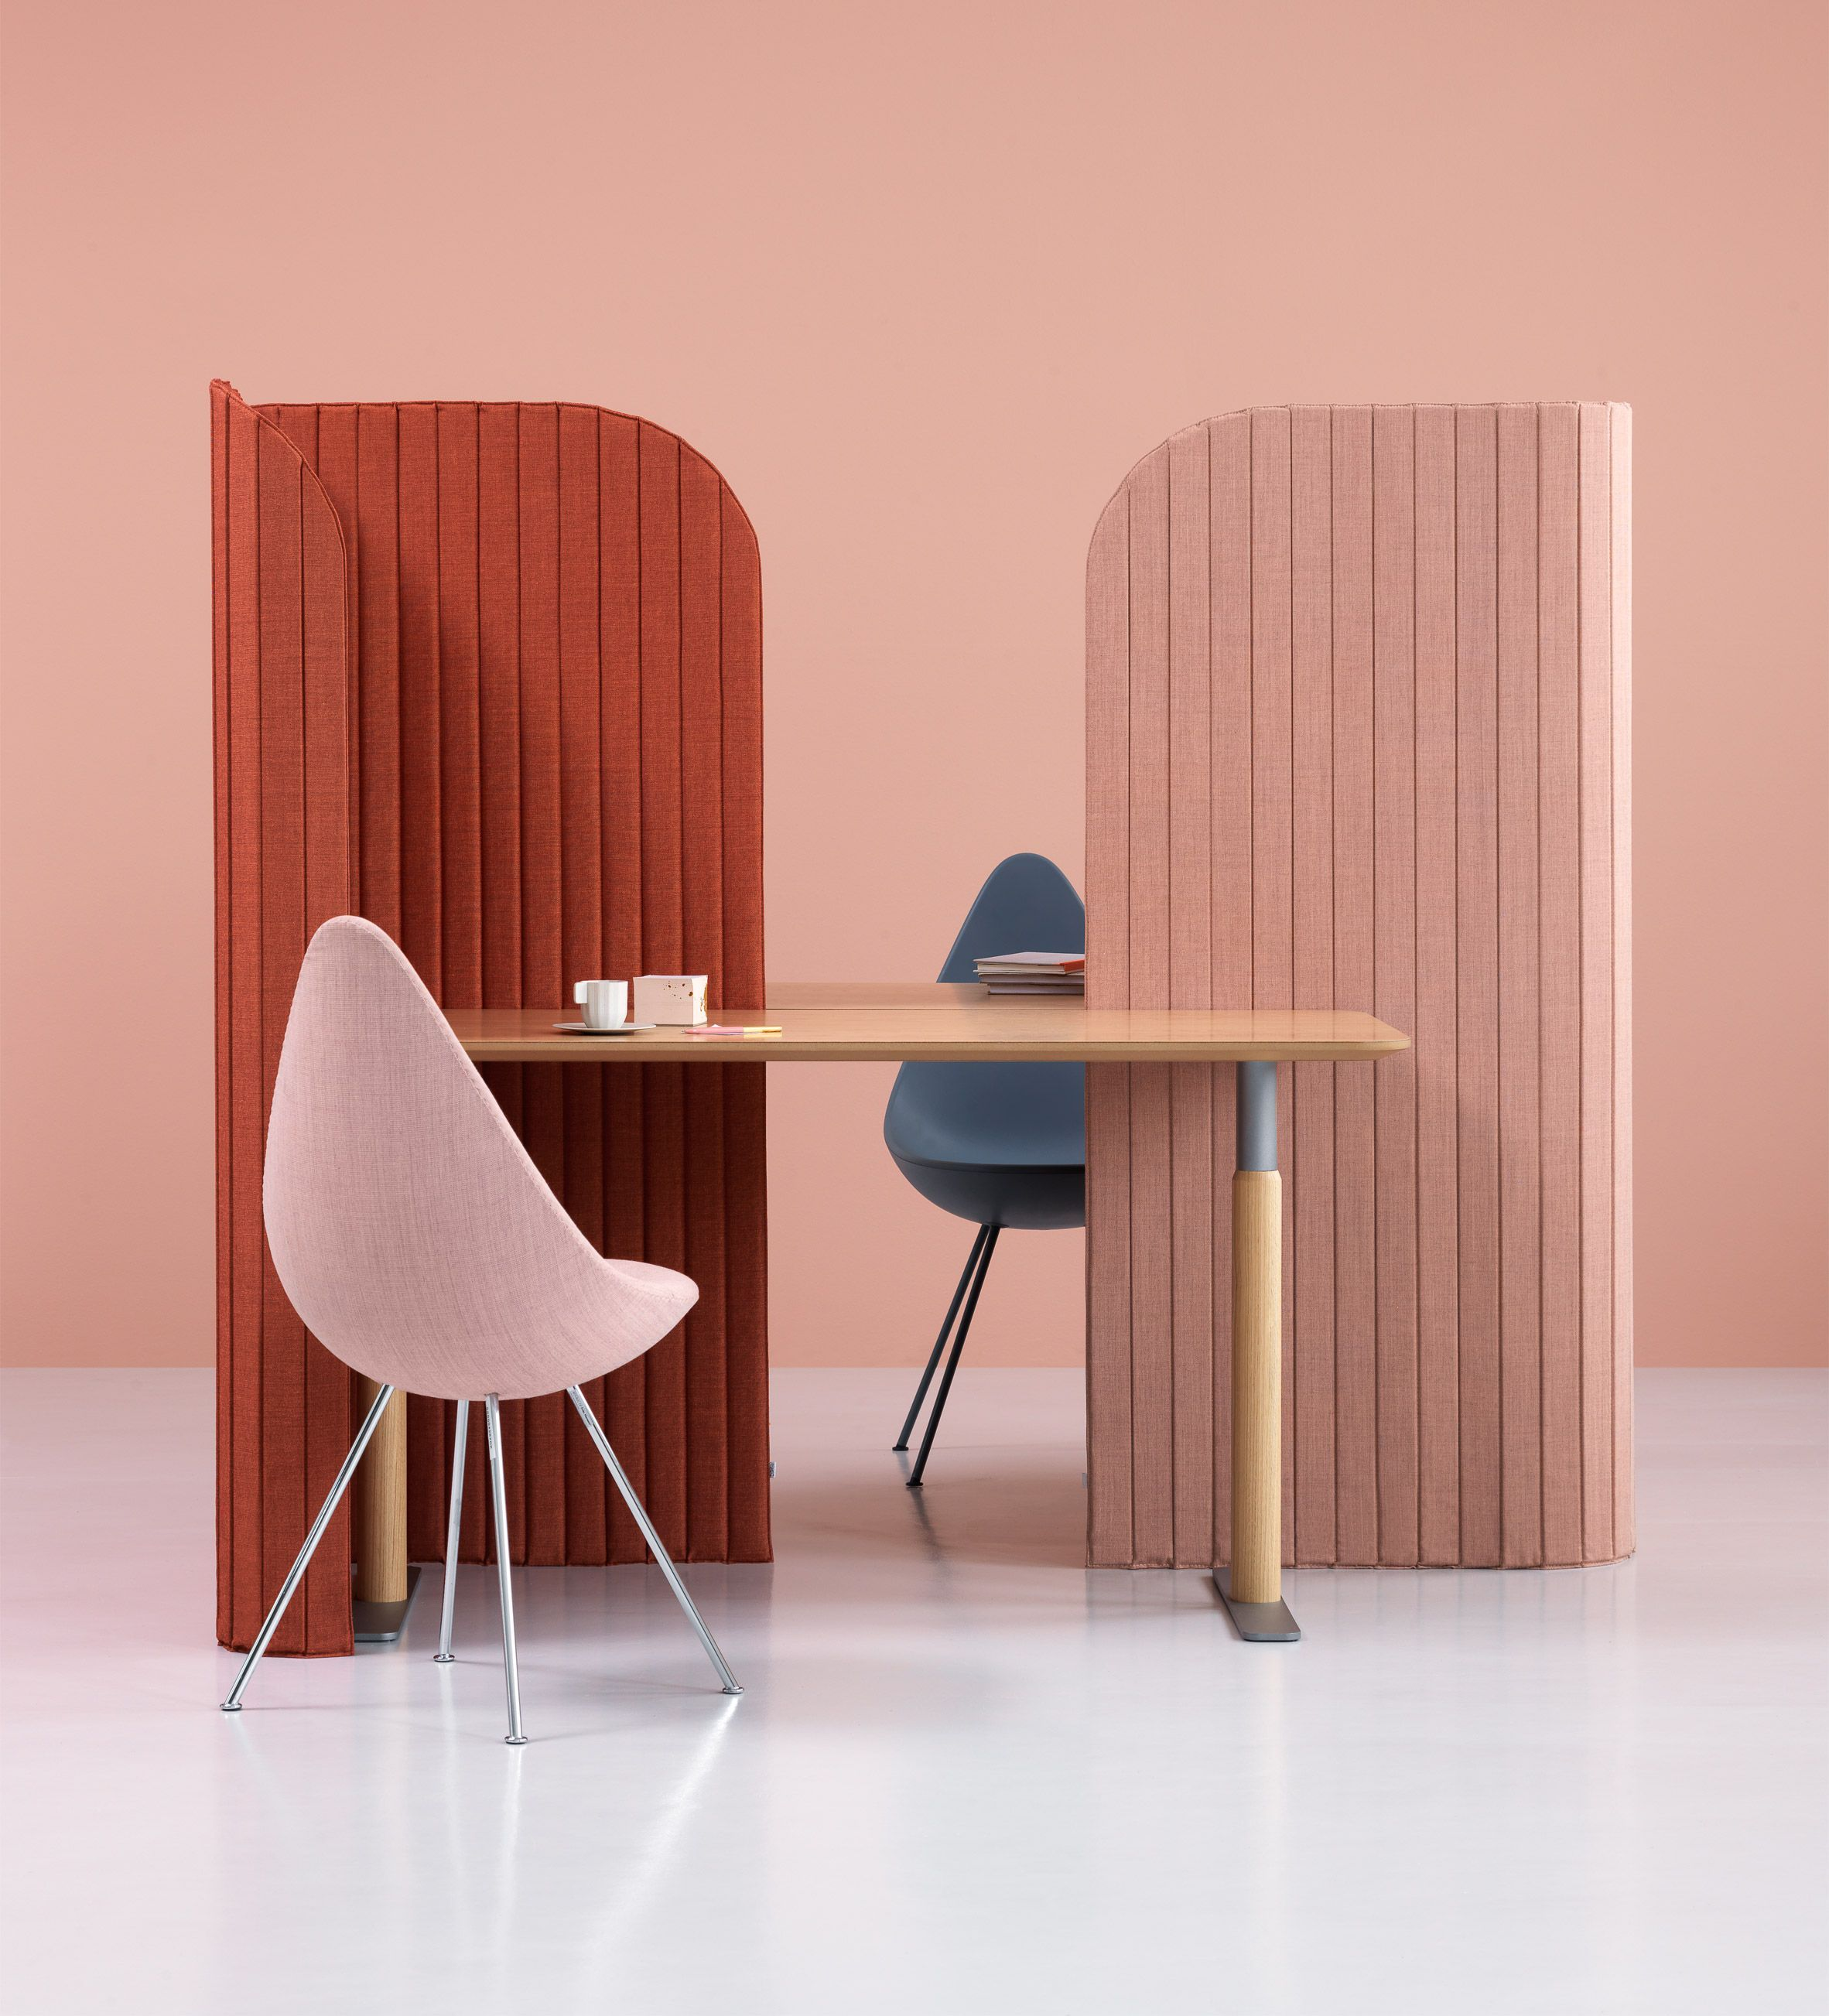 Note design studio creates office divider for people working on the